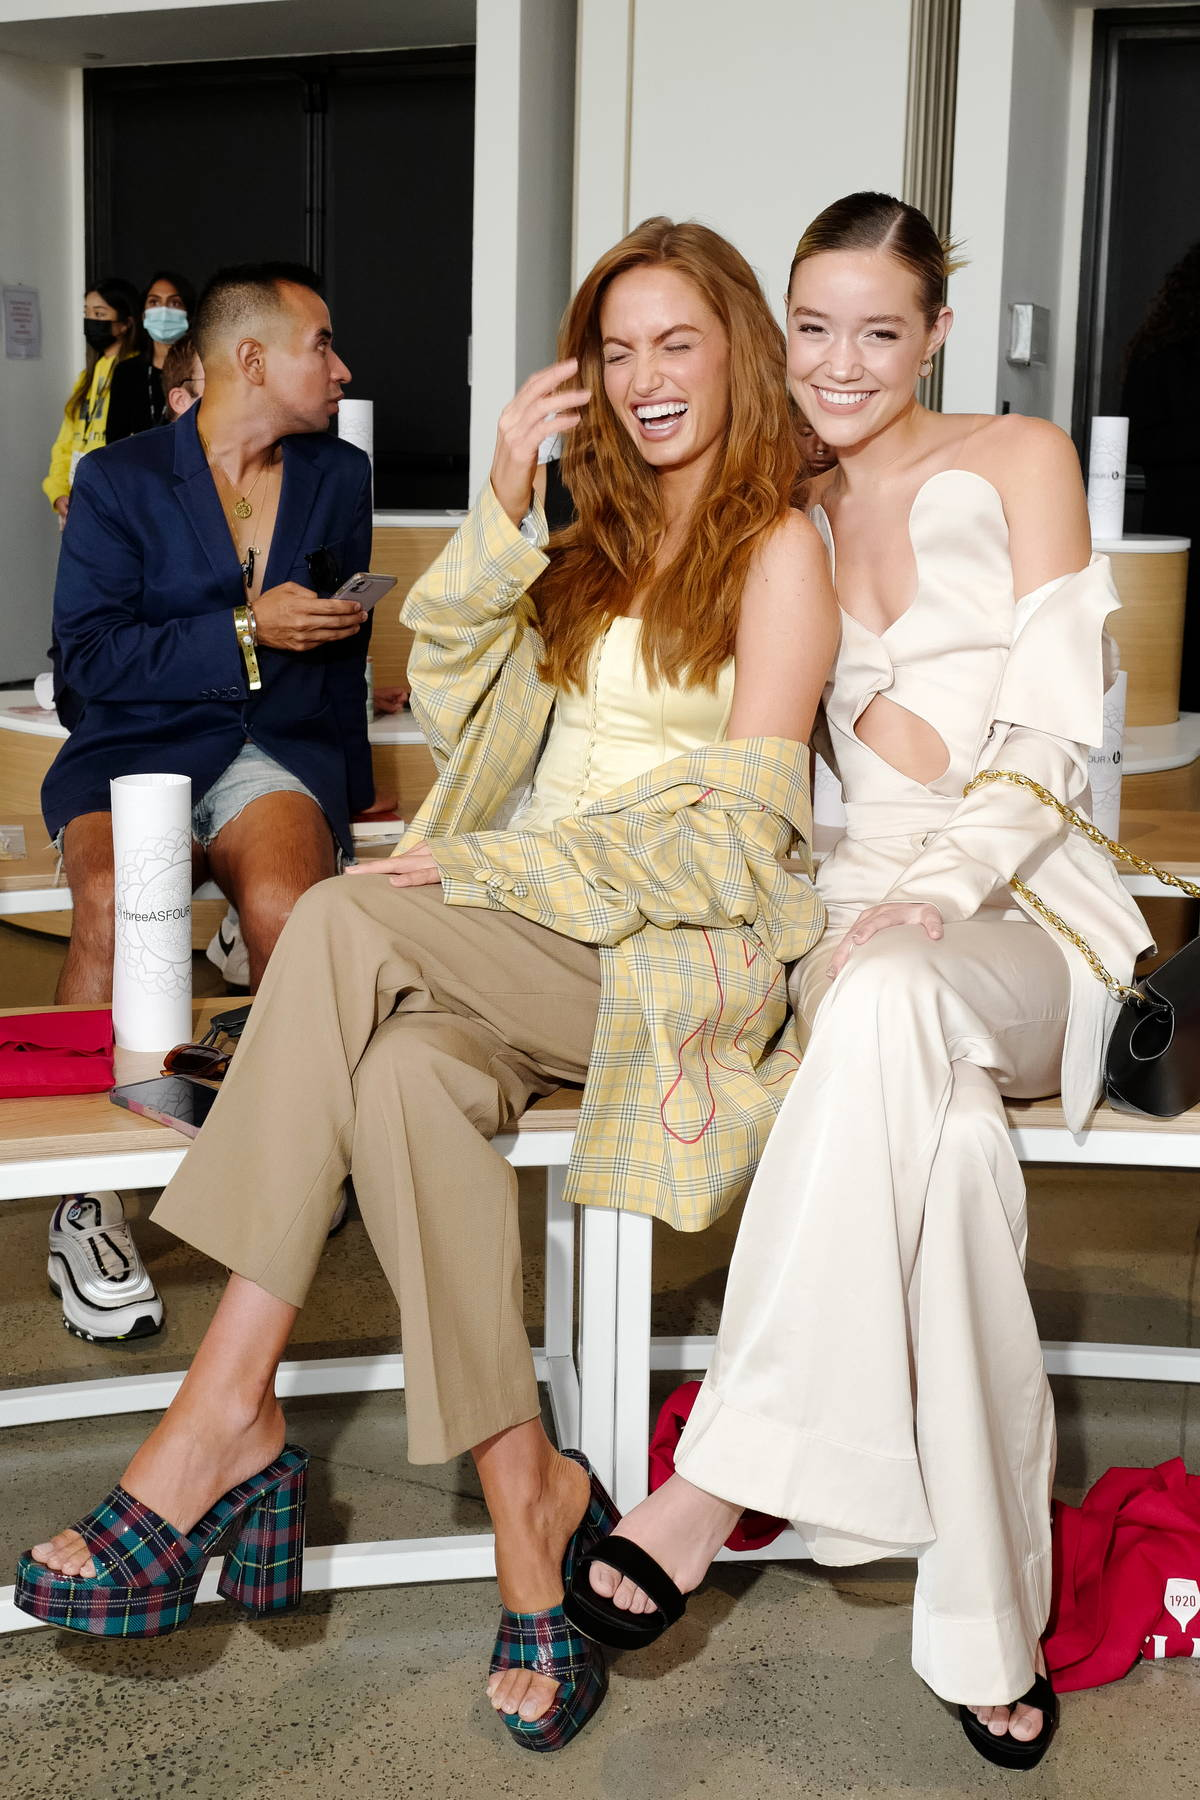 Haley Kalil and Olivia Ponton attend ThreeASFOUR during New York Fashion Week in New York City